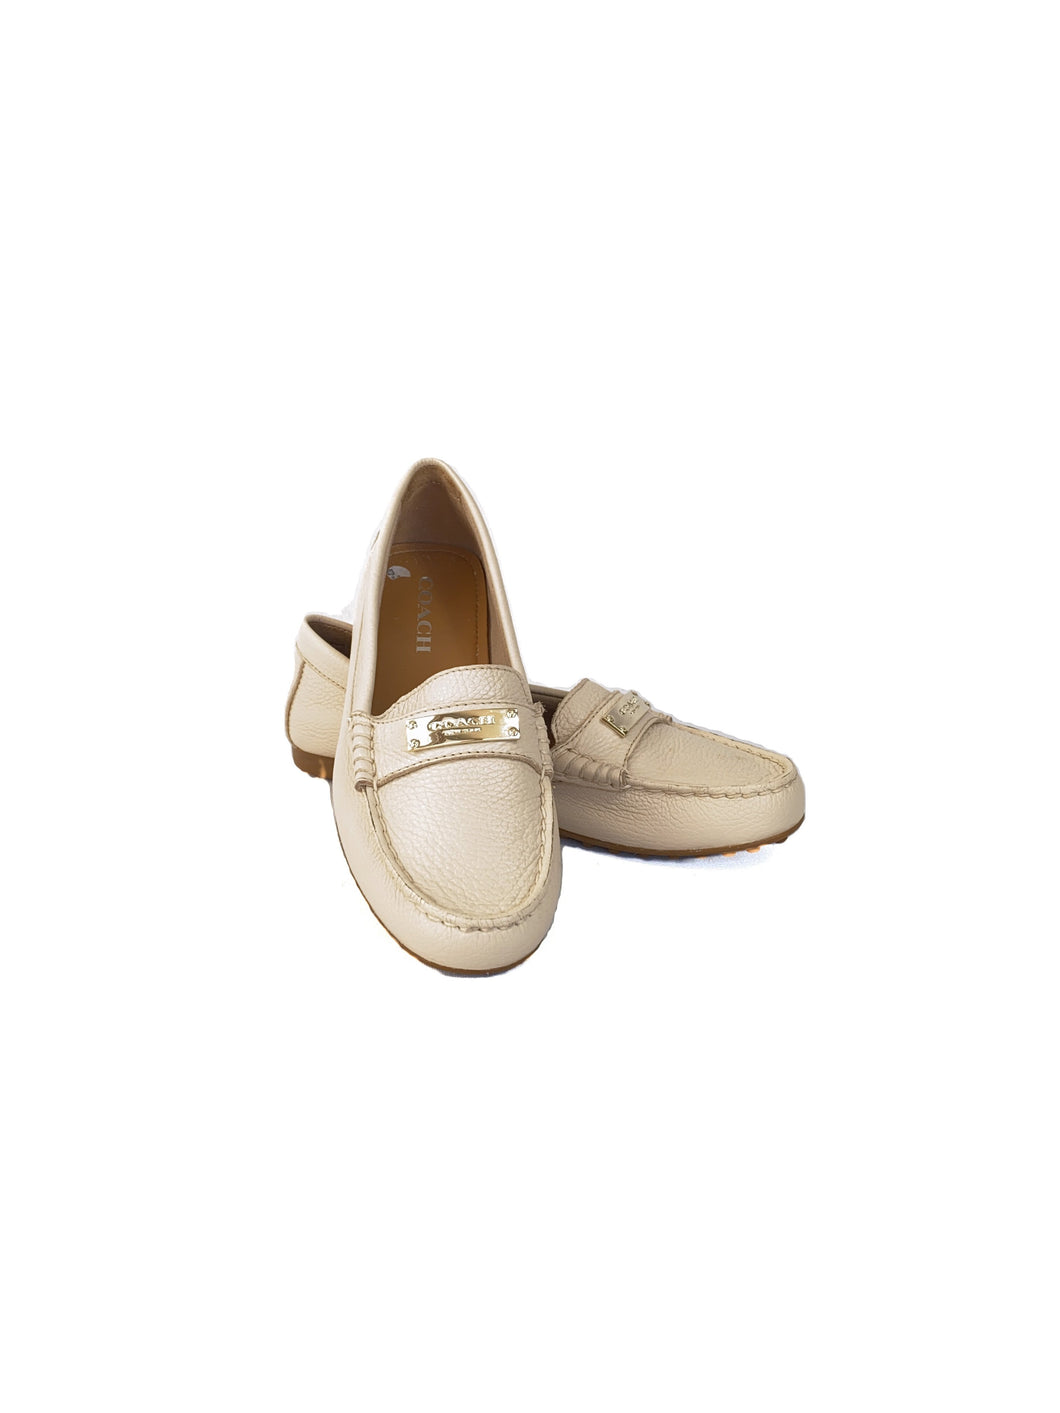 Coach cream leather loafers size 6.5 - My Girlfriend's Wardrobe LLC